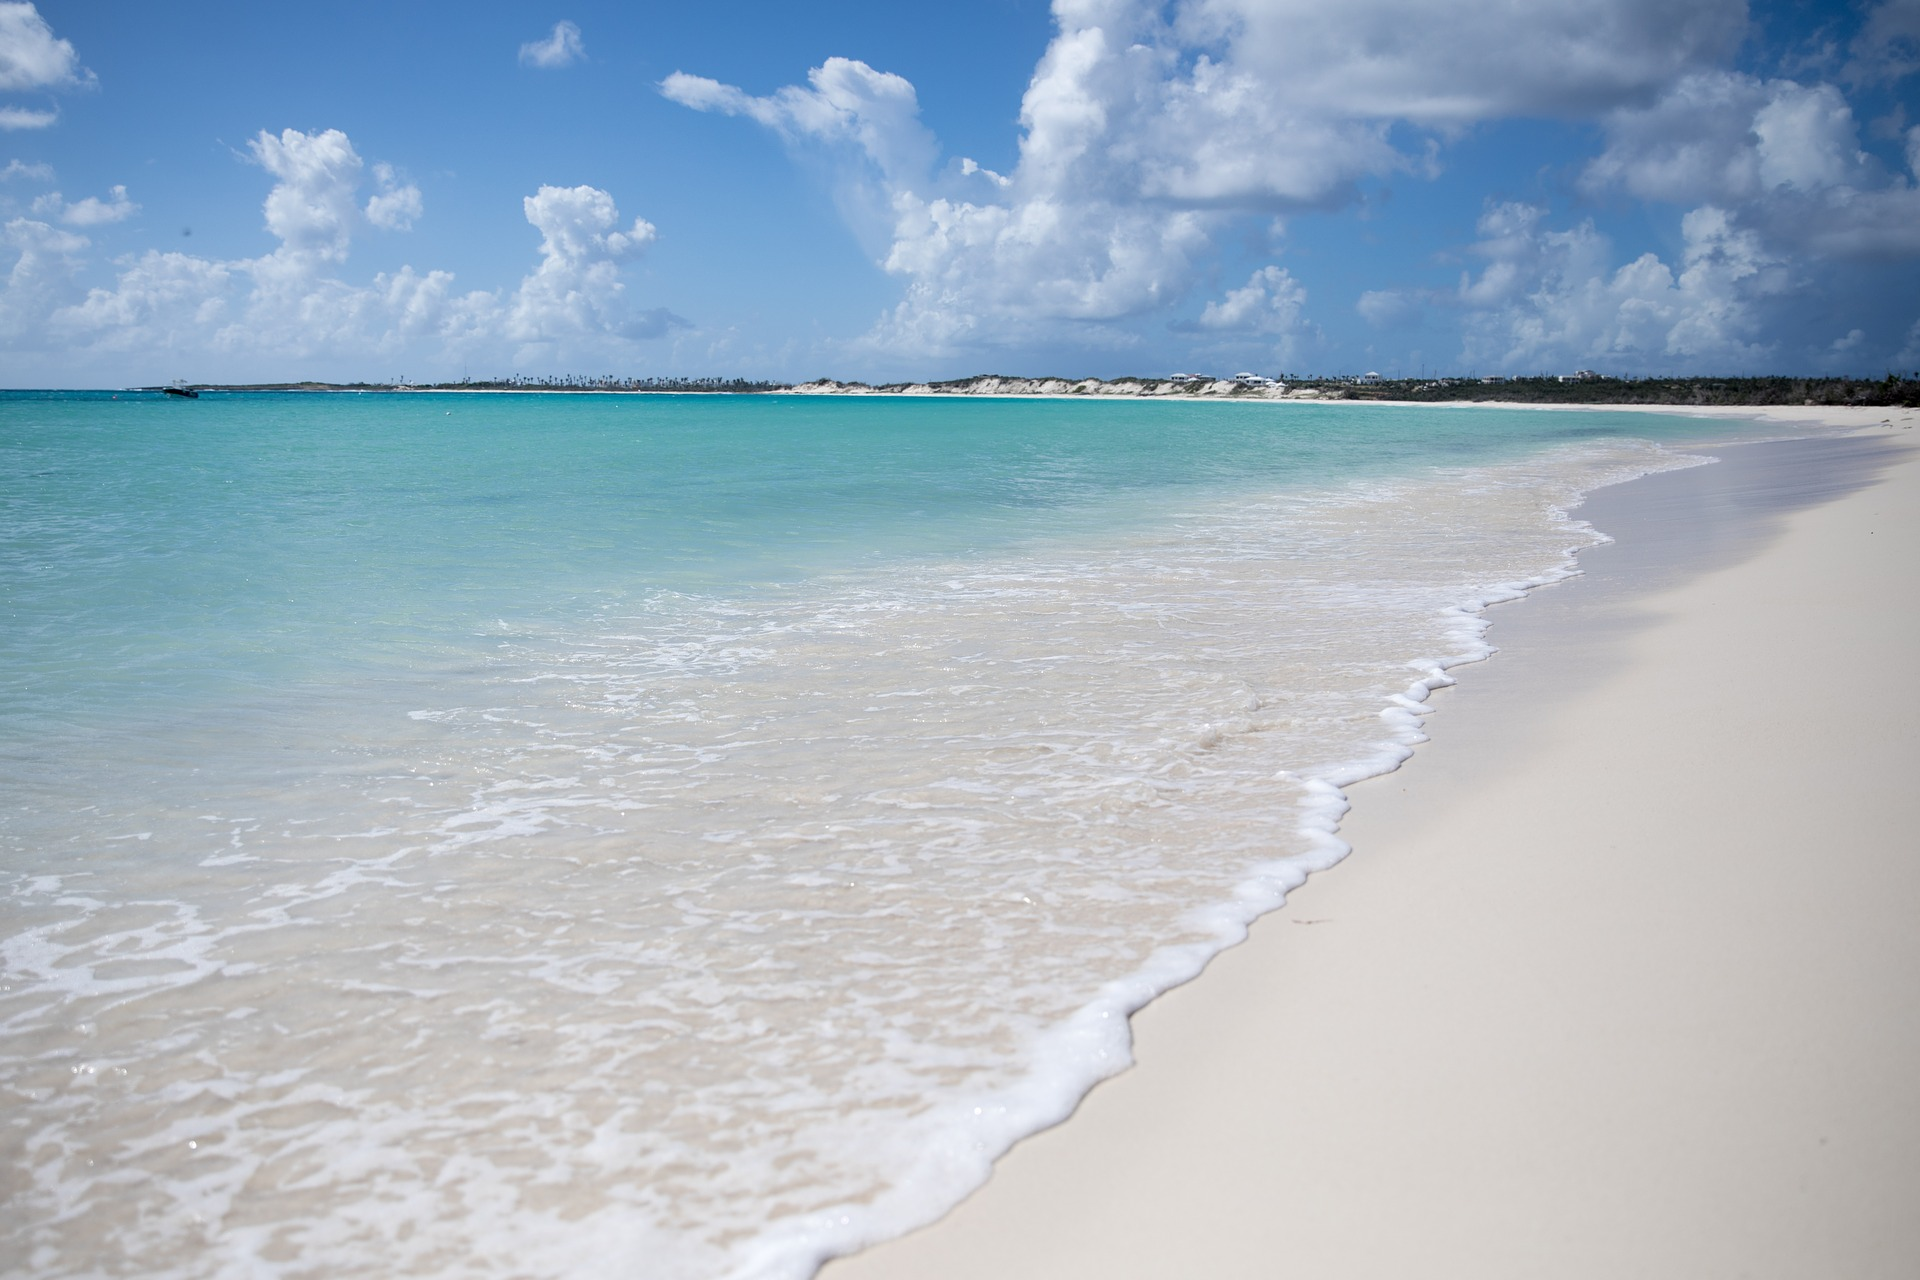 Anguilla beach with turquoise blue water carribean